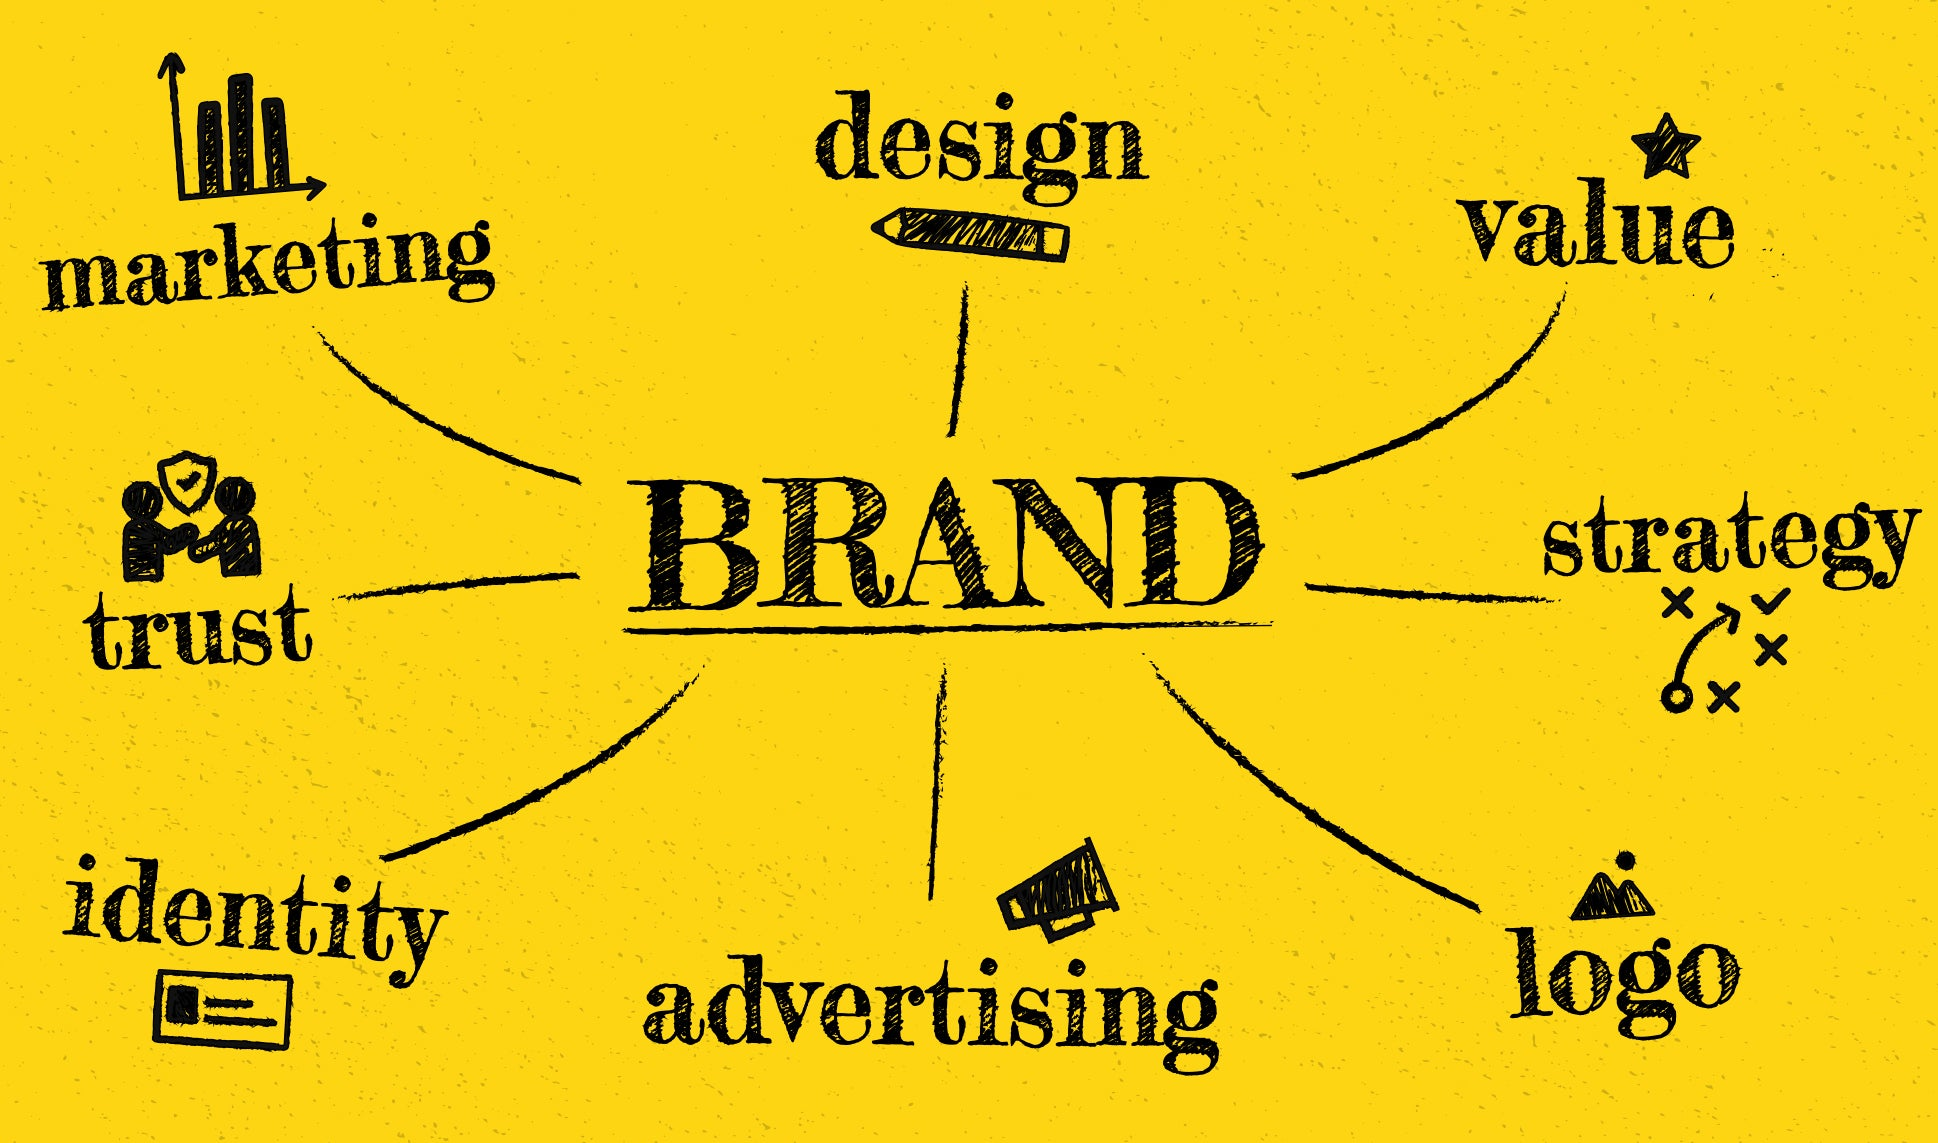 black brand info graph depicts what goes into a brand such as marketing, design, value, strategy, logo, advertising, identity, and trust.